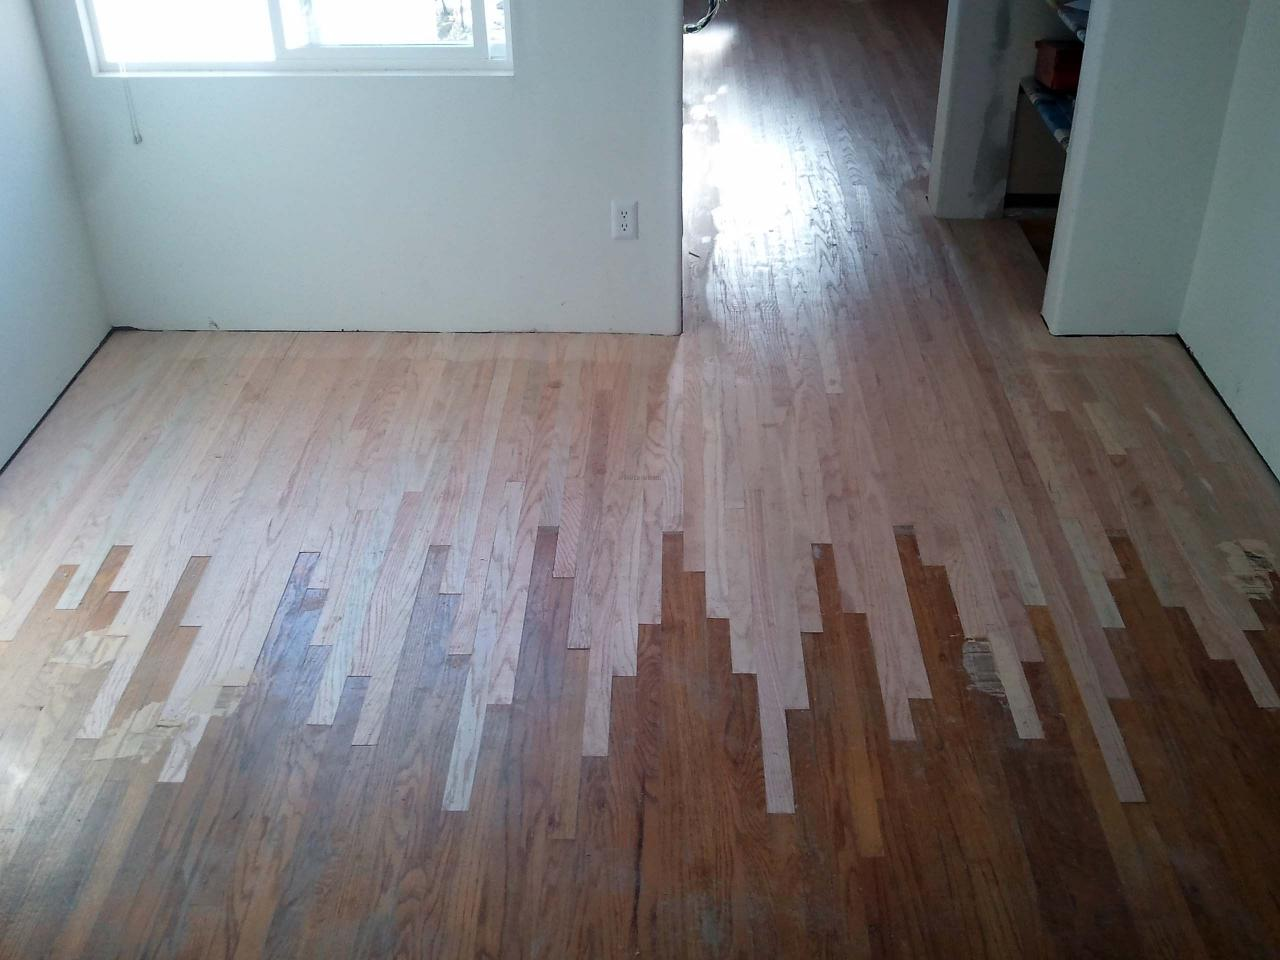 San diego hardwood flooring wood floors for Hardwood floors san diego